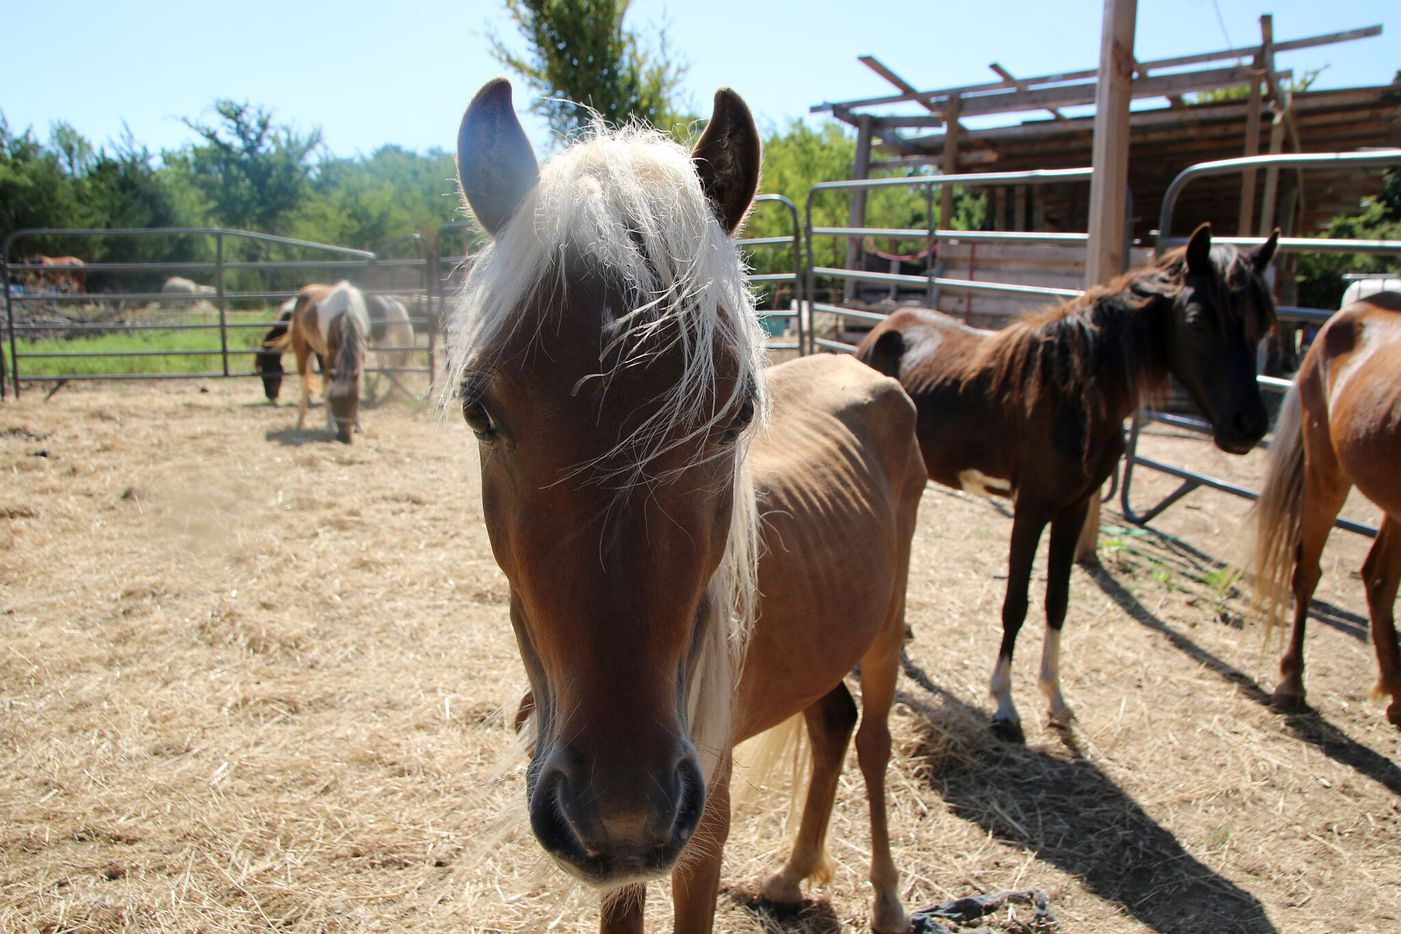 Horses seized by the SPCA in Dallas County.